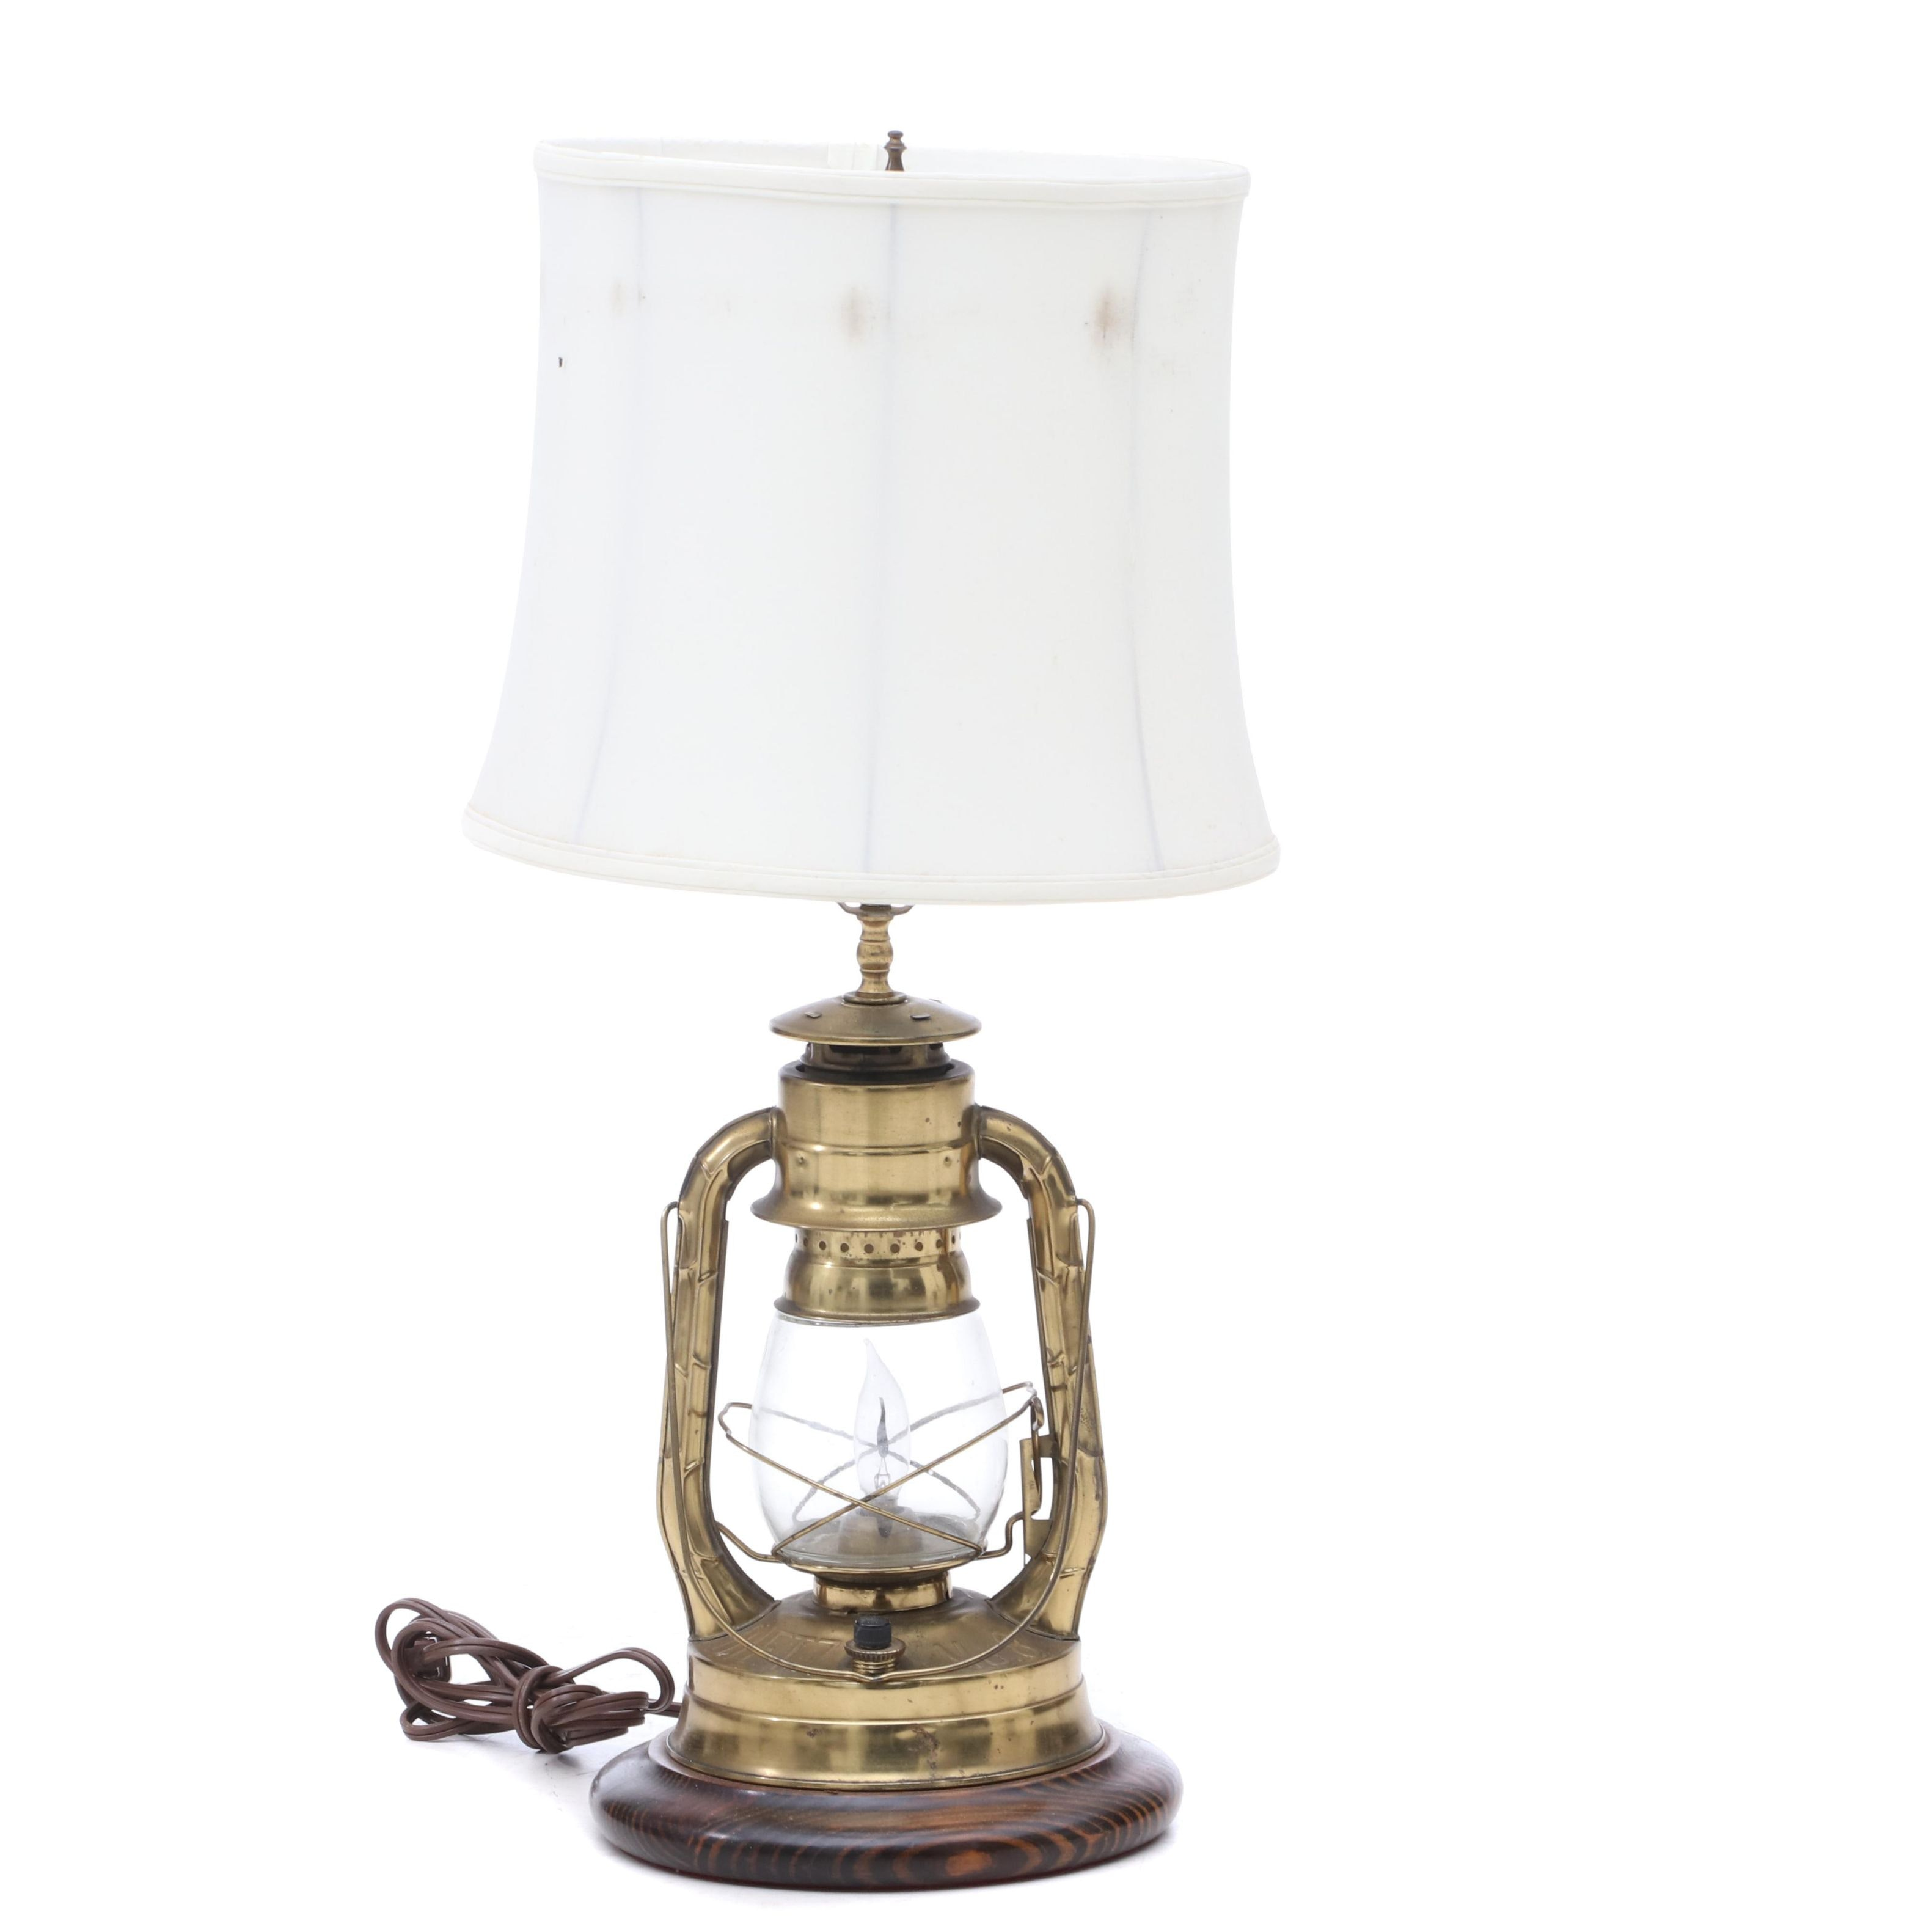 "Converted Dietz ""Air Pilot"" Lantern Table Lamp"